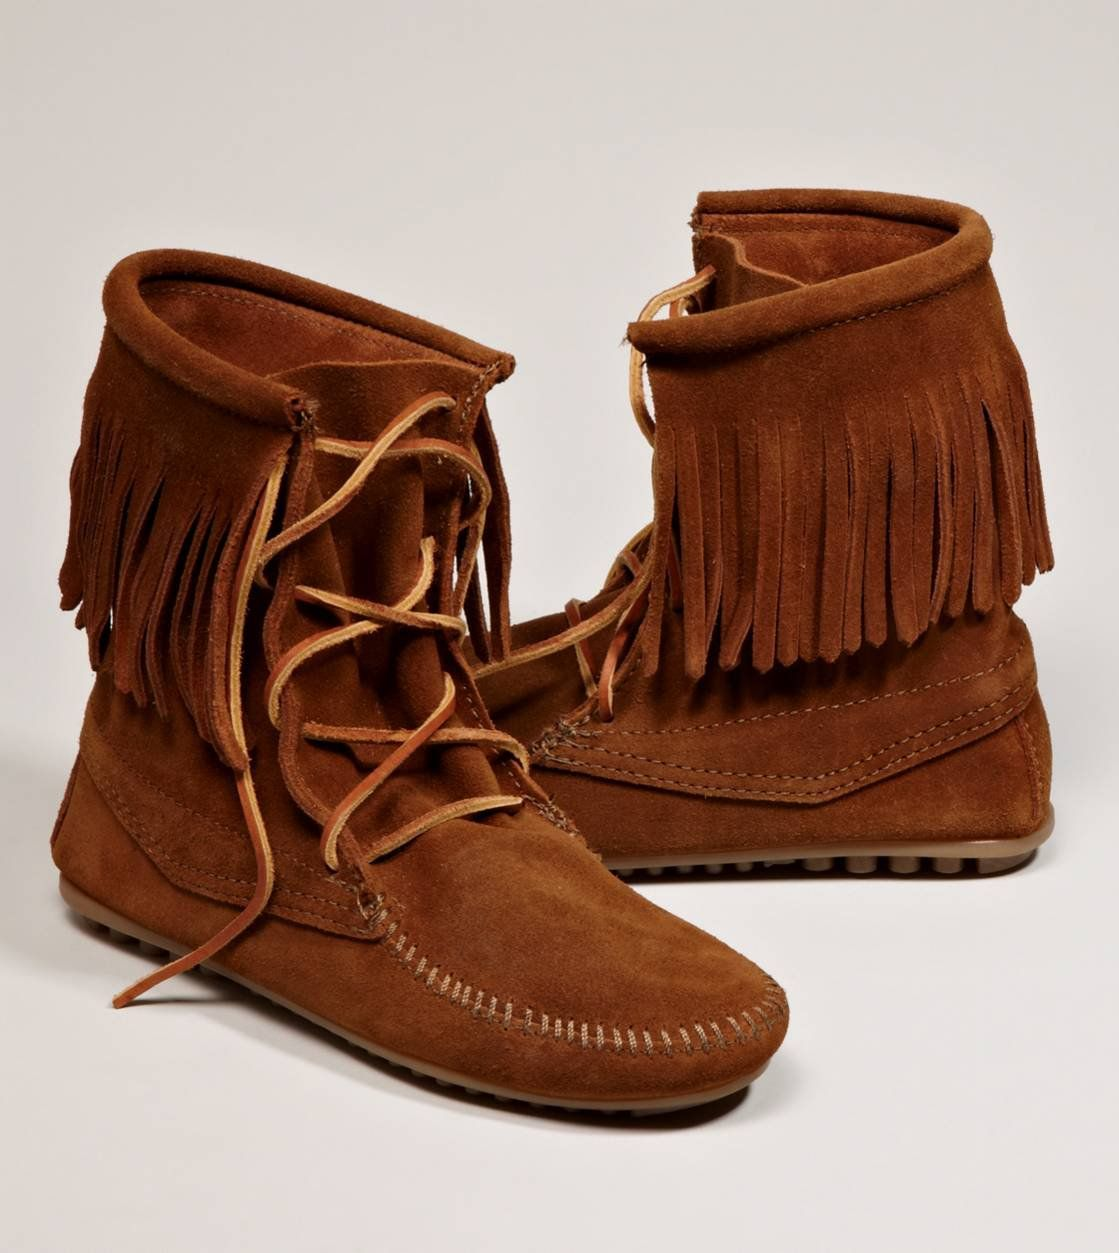 Minnetonka Tramper Ankle Hi Boot American Eagle Outfitters Fringe Boots Boots Minnetonka Fringe Boots